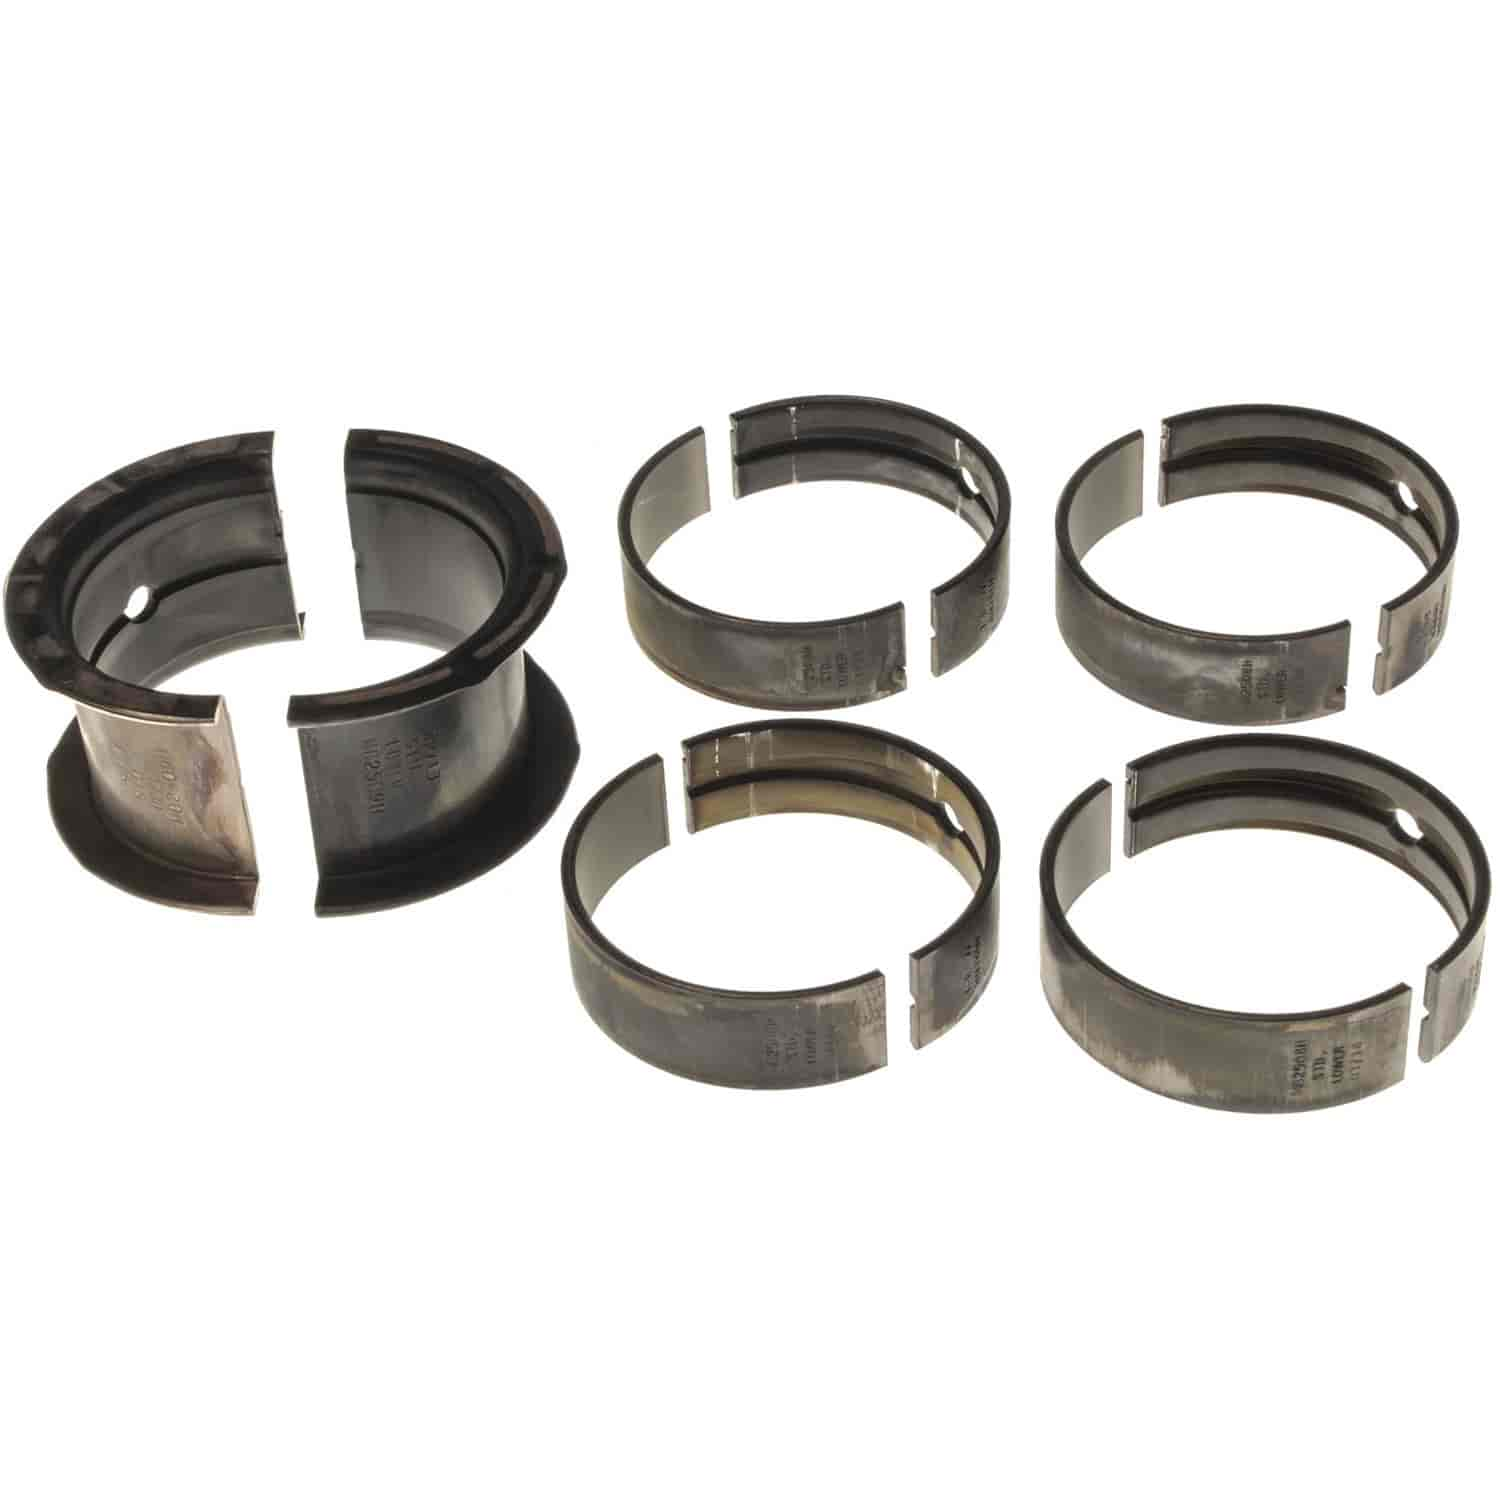 Clevite MS909H - Clevite 77 High-Performance Bearings